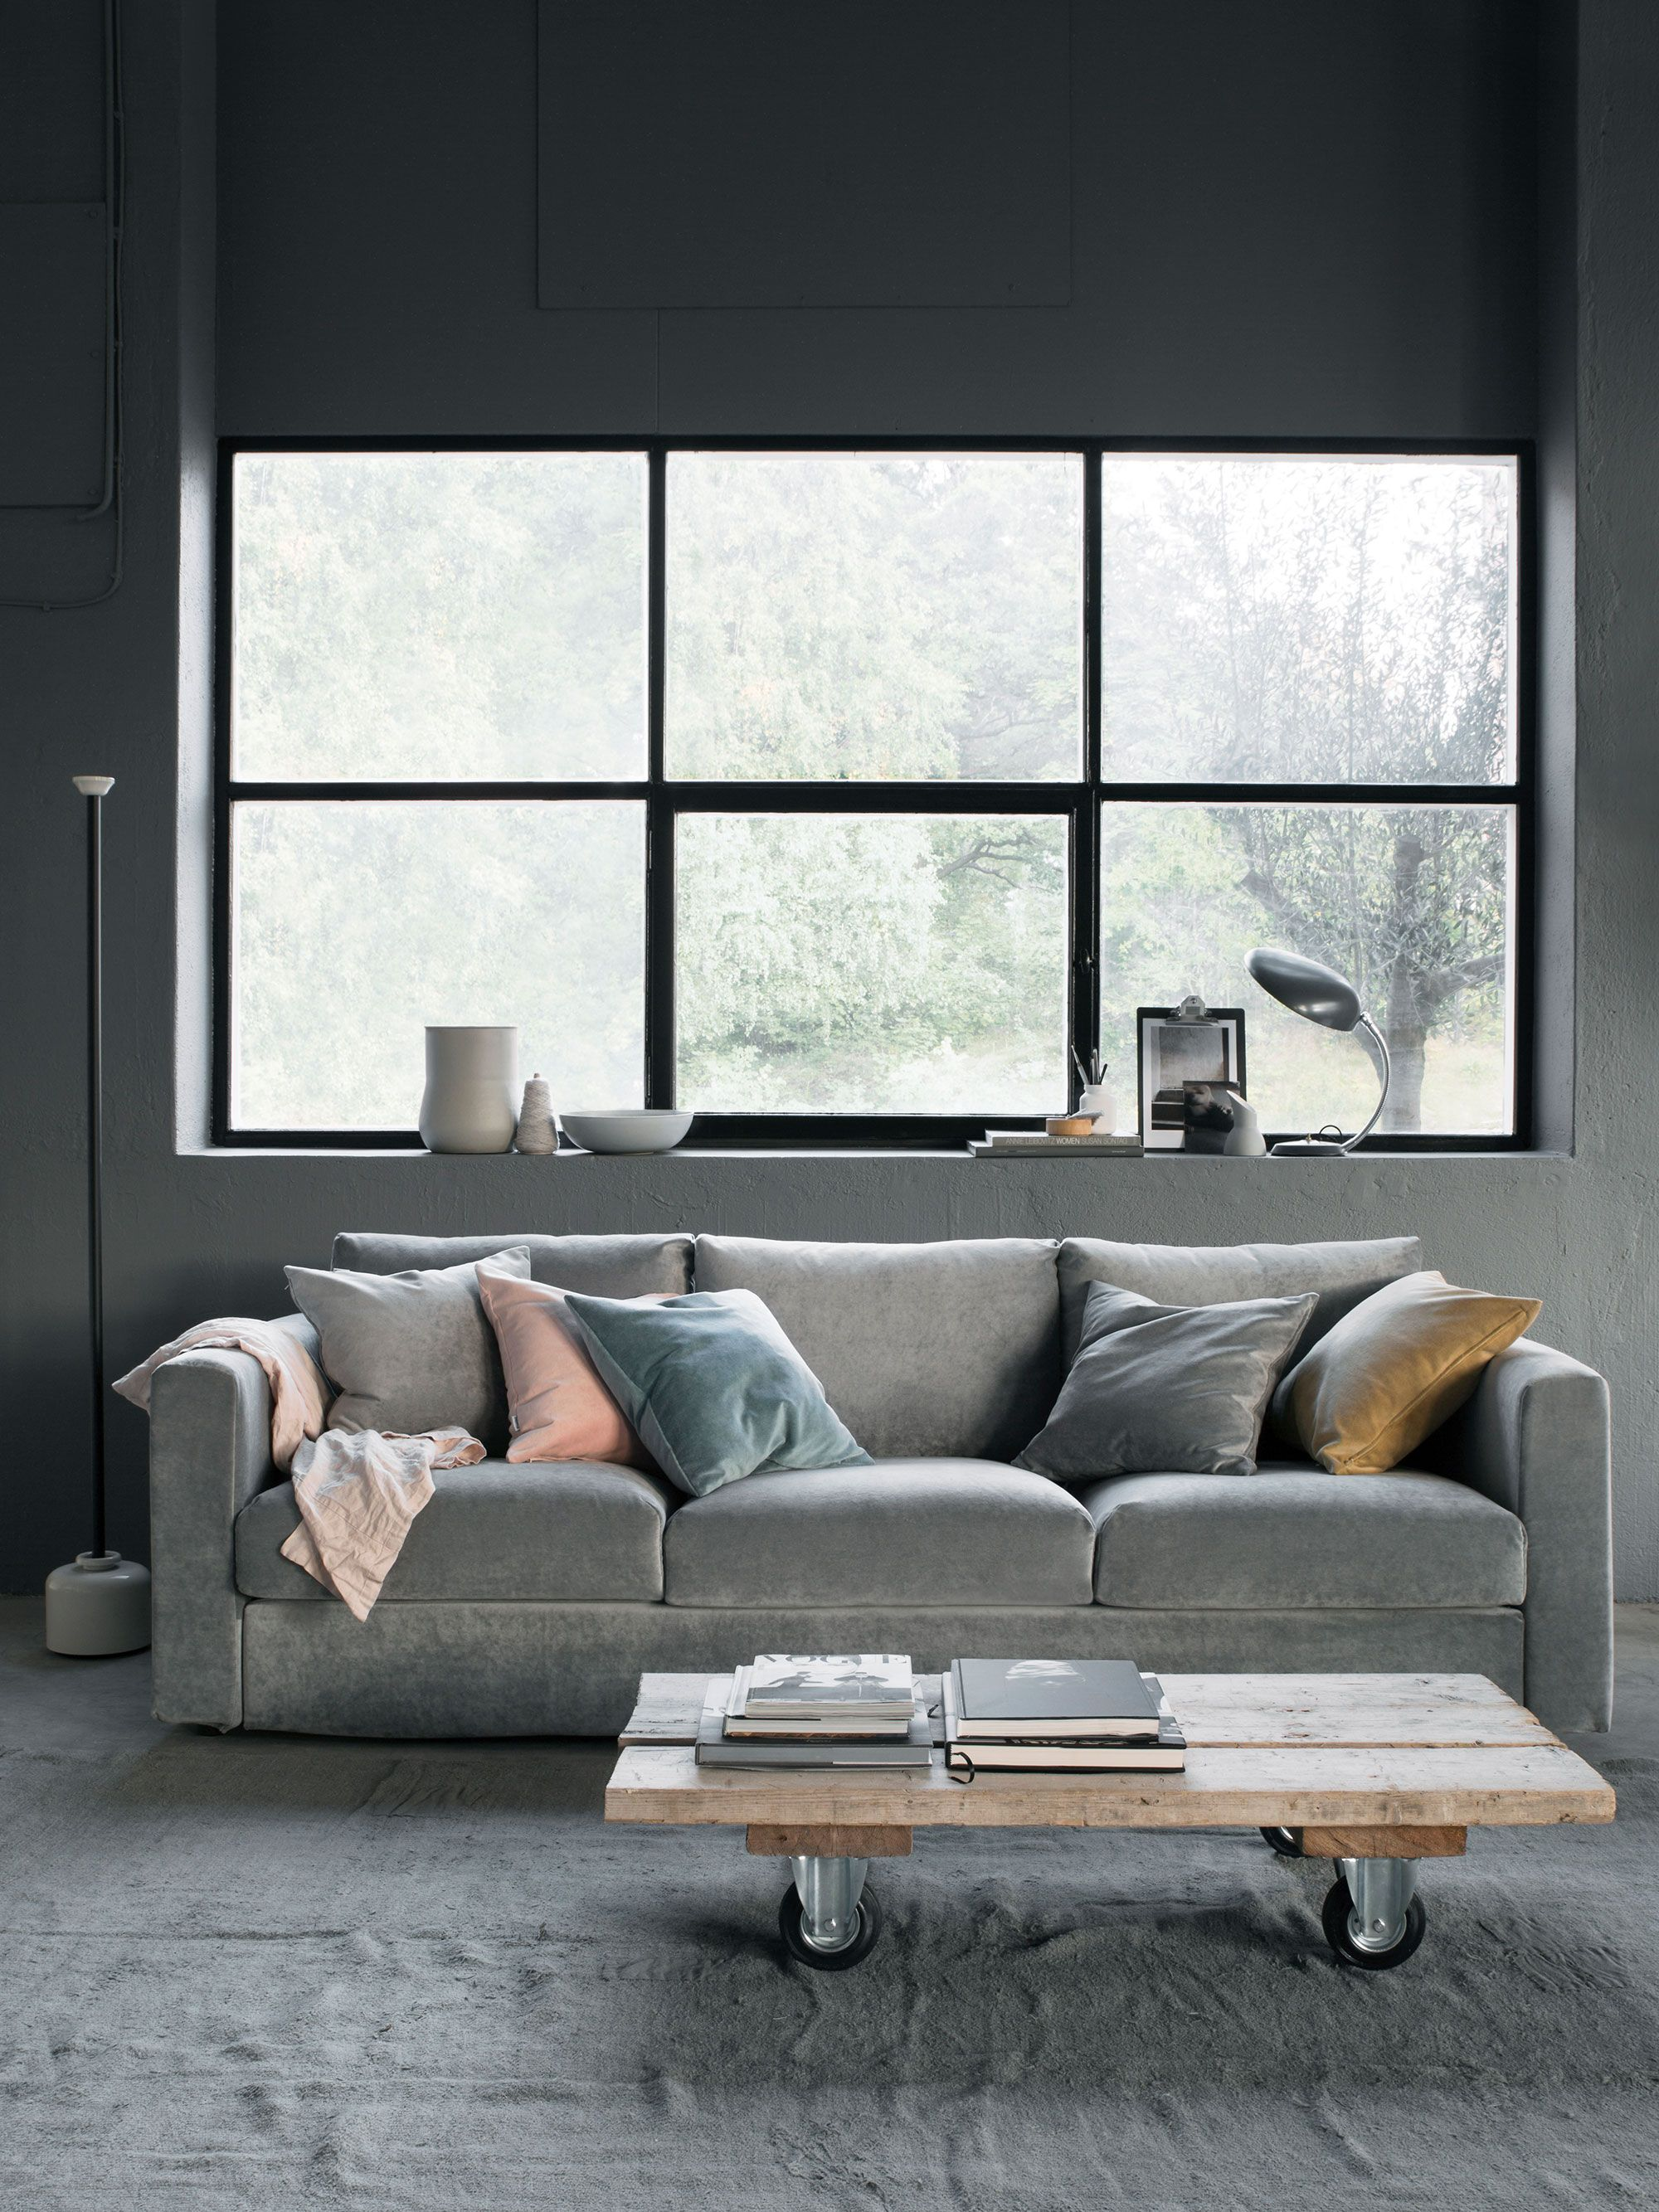 Moody Shades | Grey Velvet Sofa With Pink And Blue Velvet Cushions |  Scandinavian Minimalism | Industrial Style Window | IKEA Vimle Sofa With A  Bemz Cover ...